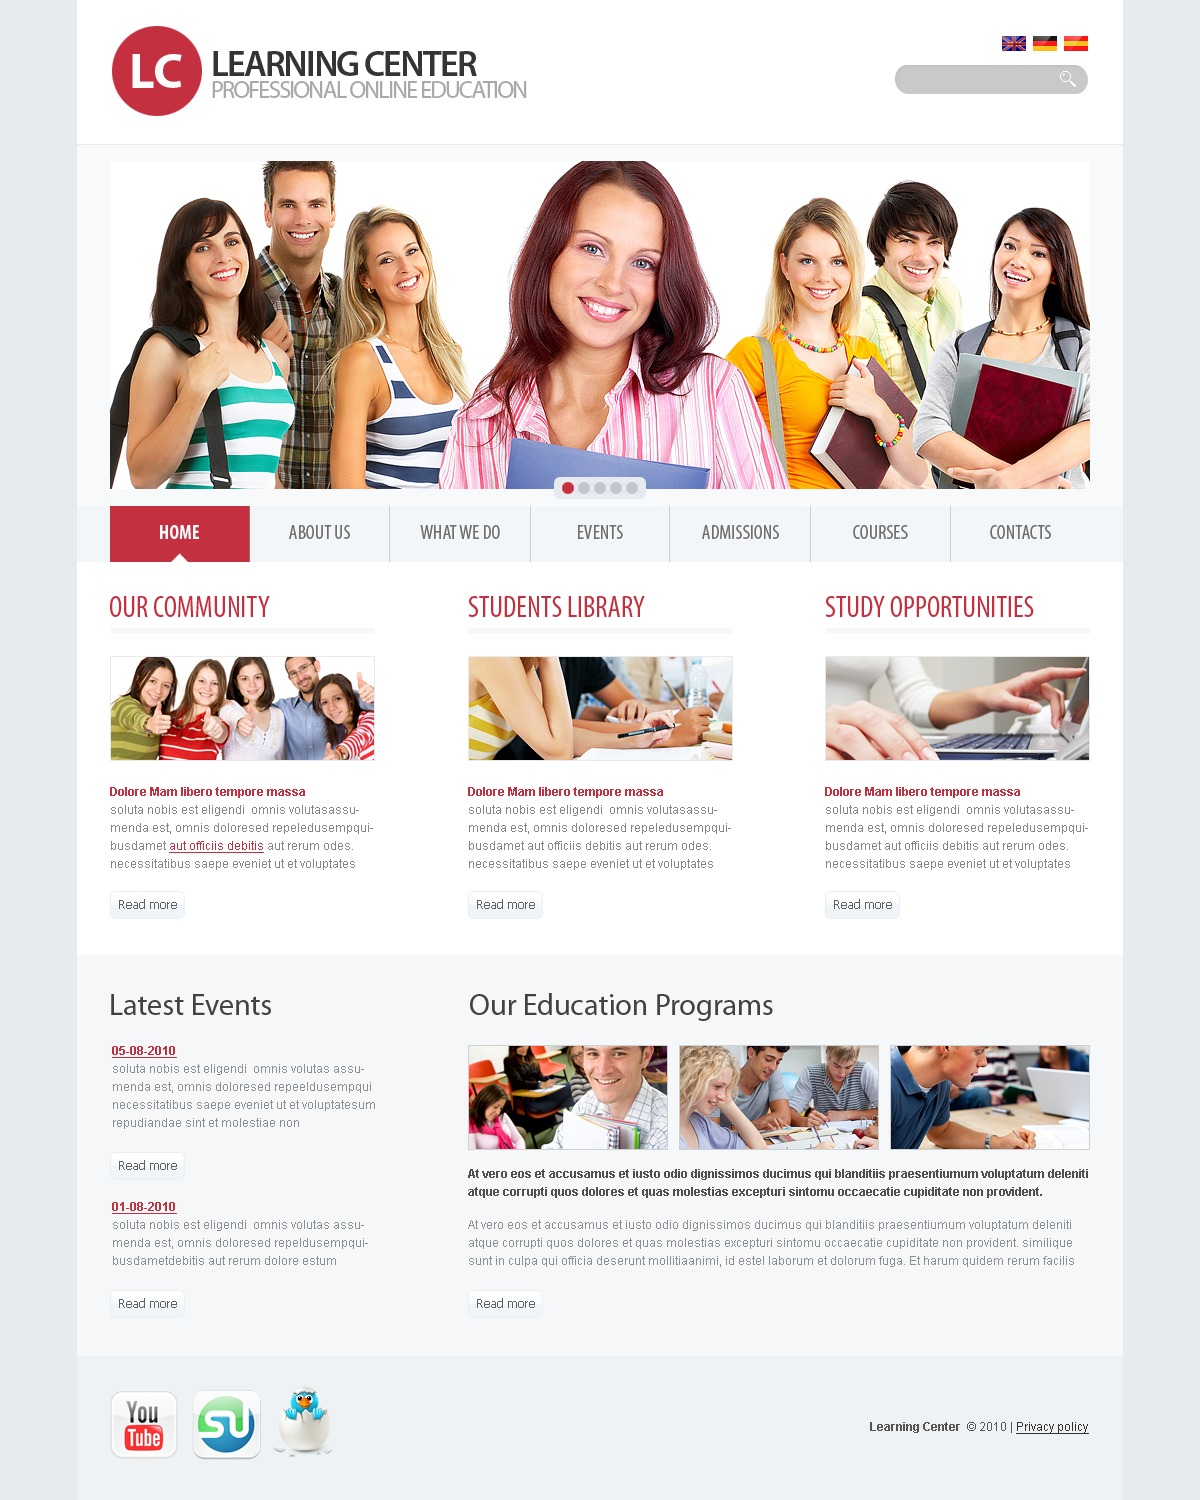 The Learning Education Center PSD Design 54422, one of the best PSD templates of its kind (education, flash 8, wide), also known as learning education center PSD template, college PSD template, science PSD template, admission PSD template, faculty PSD template, department PSD template, class PSD template, alumni PSD template, student PSD template, professor PSD template, enrollment PSD template, union PSD template, library PSD template, auditorium PSD template, graduate PSD template, direction PSD template, tests PSD template, entrance PSD template, examination PSD template, exam PSD template, sport PSD template, community PSD template, party PSD template, administration PSD template, rector PSD template, head PSD template, dean PSD template, college and related with learning education center, college, science, admission, faculty, department, class, alumni, student, professor, enrollment, union, library, auditorium, graduate, direction, tests, entrance, examination, exam, sport, community, party, administration, rector, head, dean, college, etc.